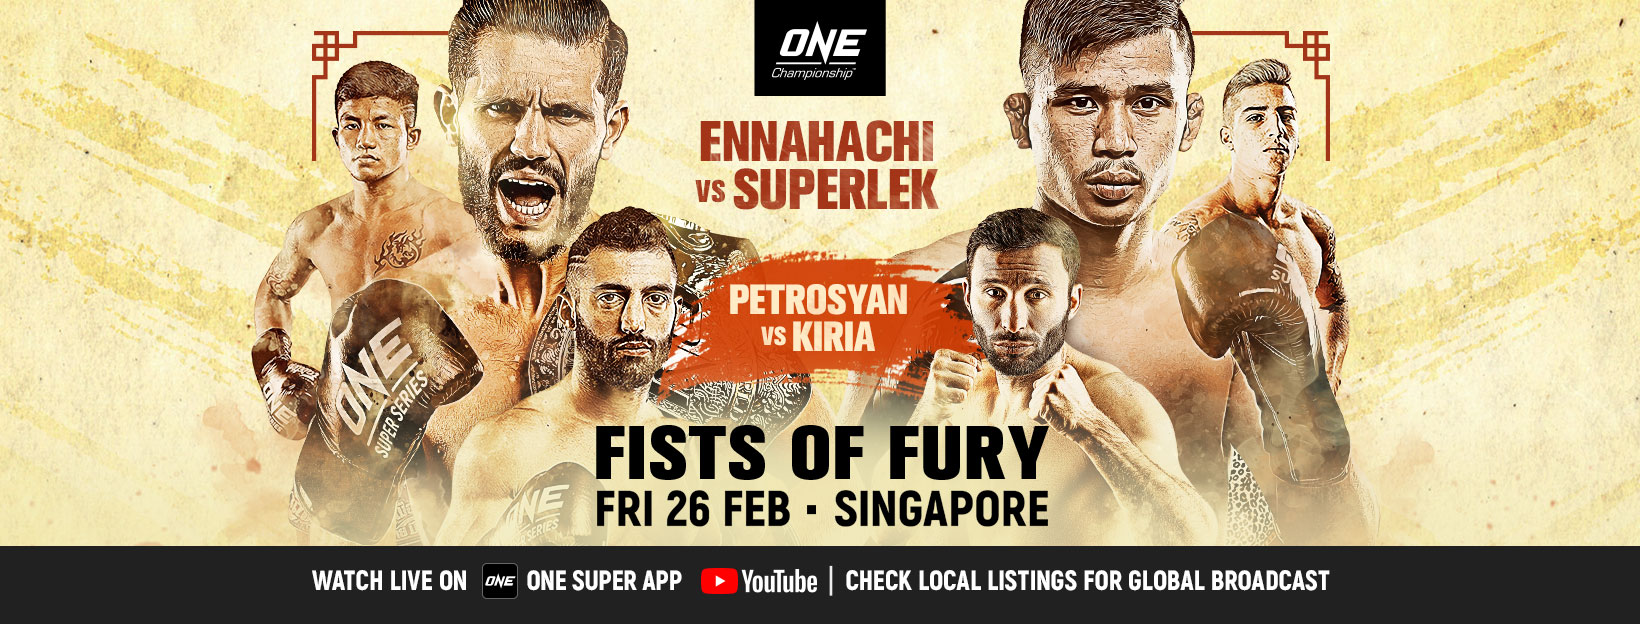 ONE - Fists of Fury